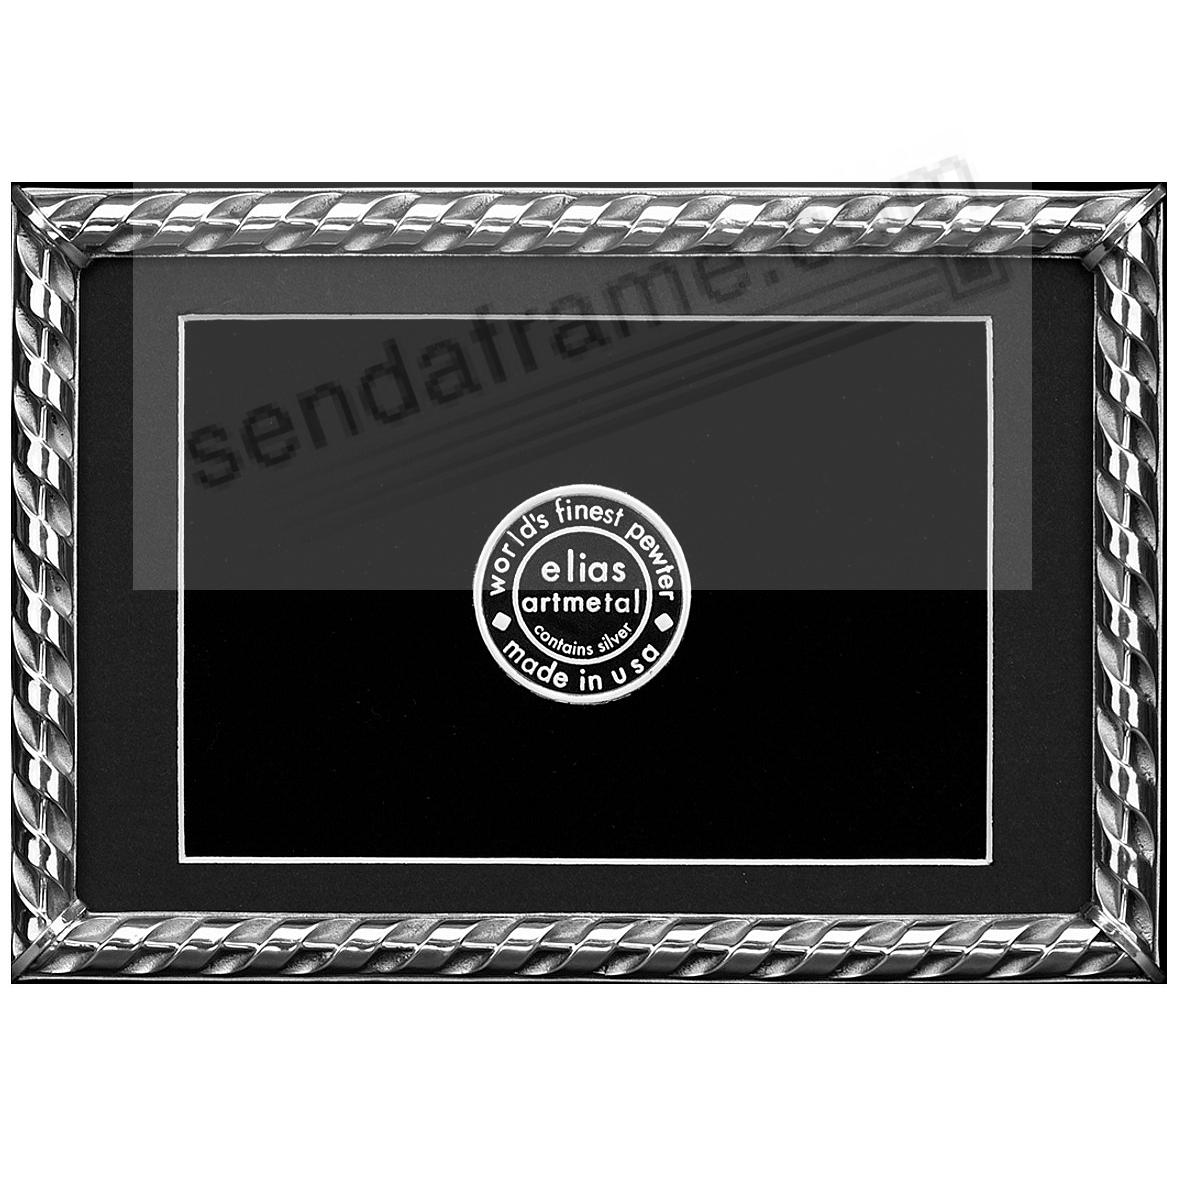 RIBBON Fine Silvered Pewter frame 9x12/8x10 by Elias Artmetal®